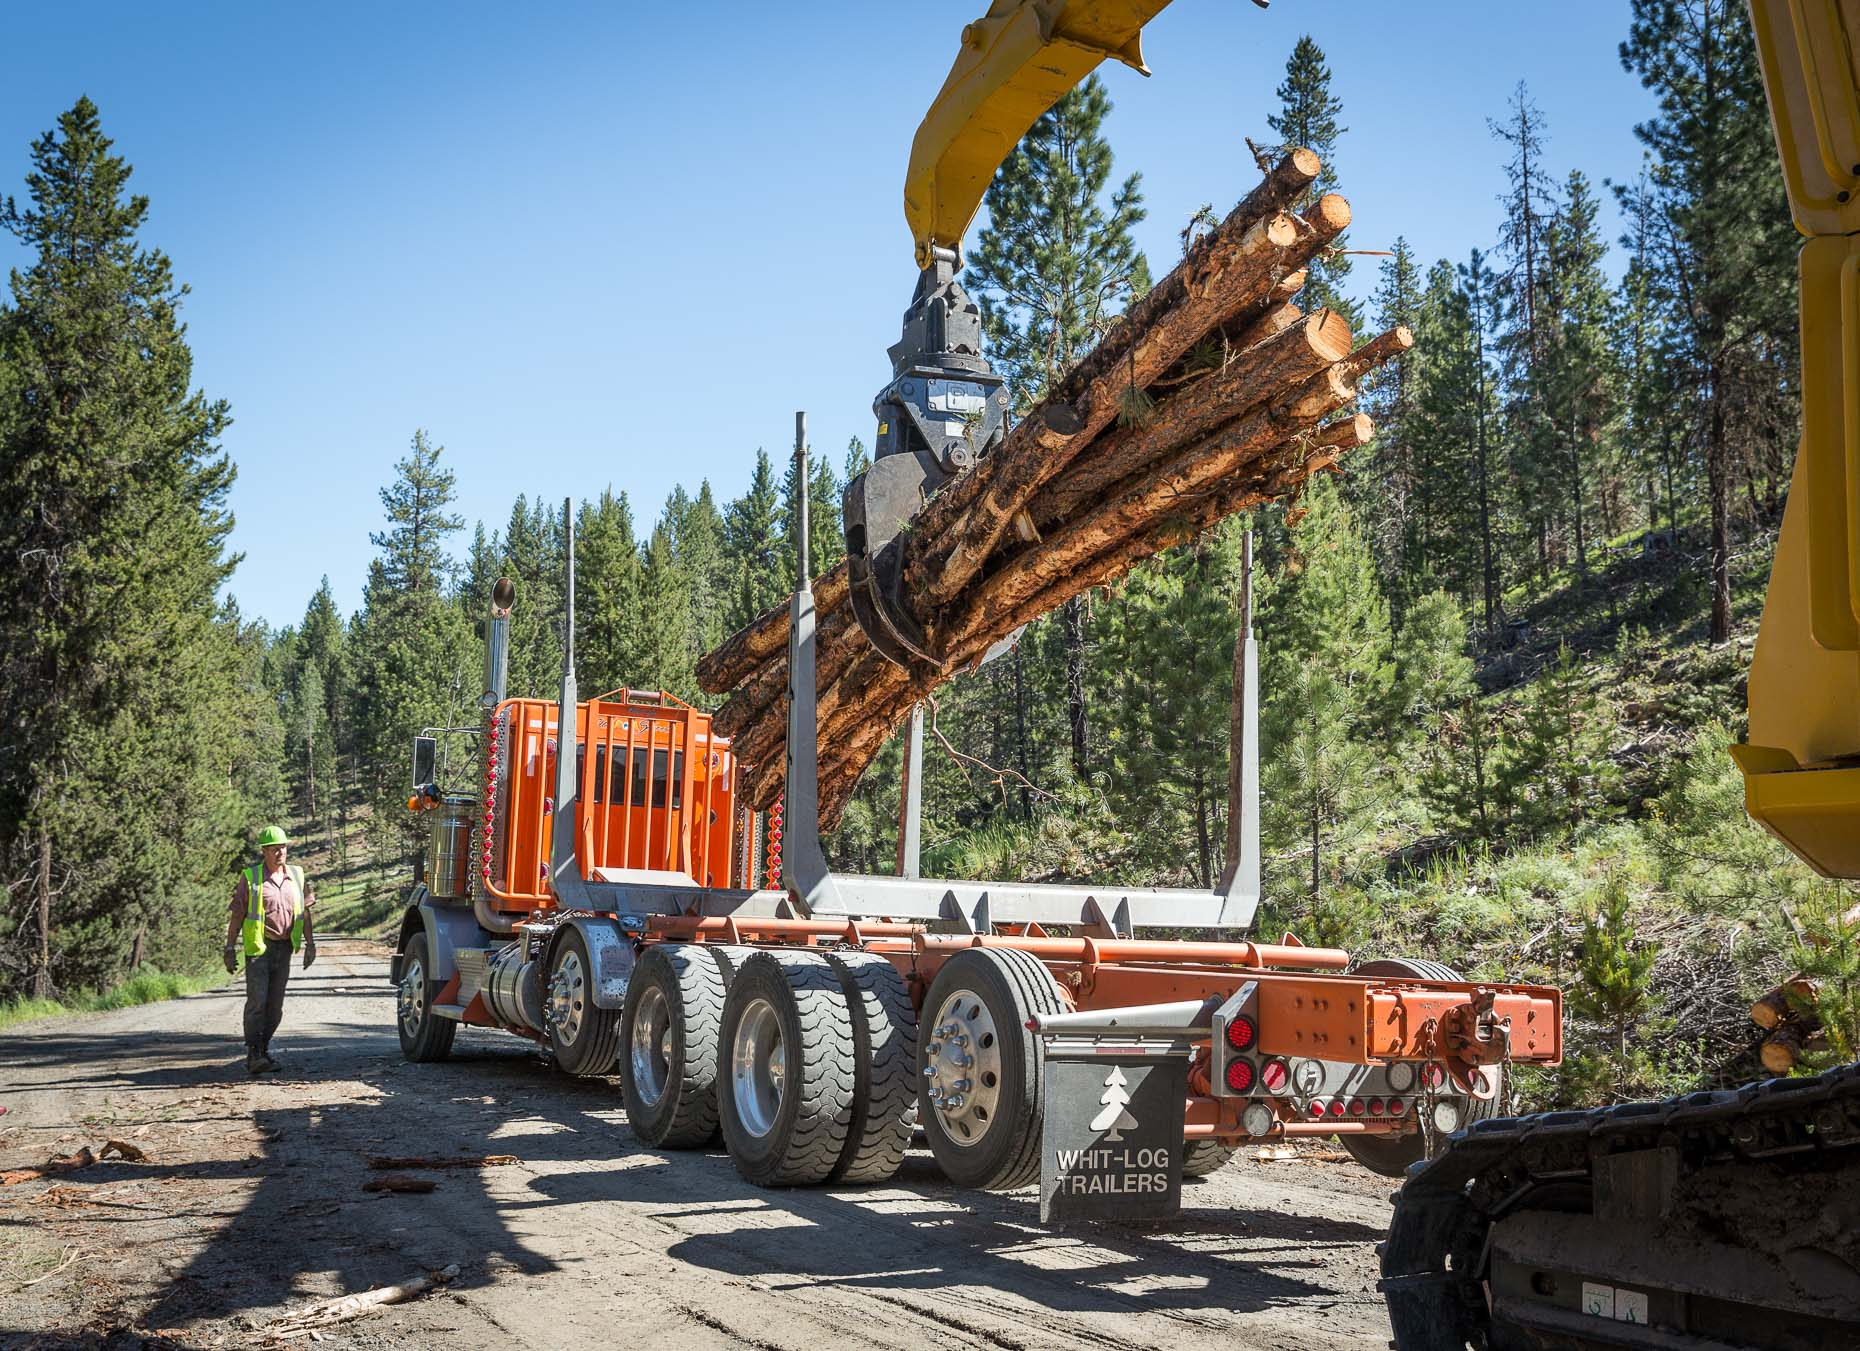 Crain with grip loads cut logs onto truck for transportation to lumber mill in Oregon, by David Zaitz